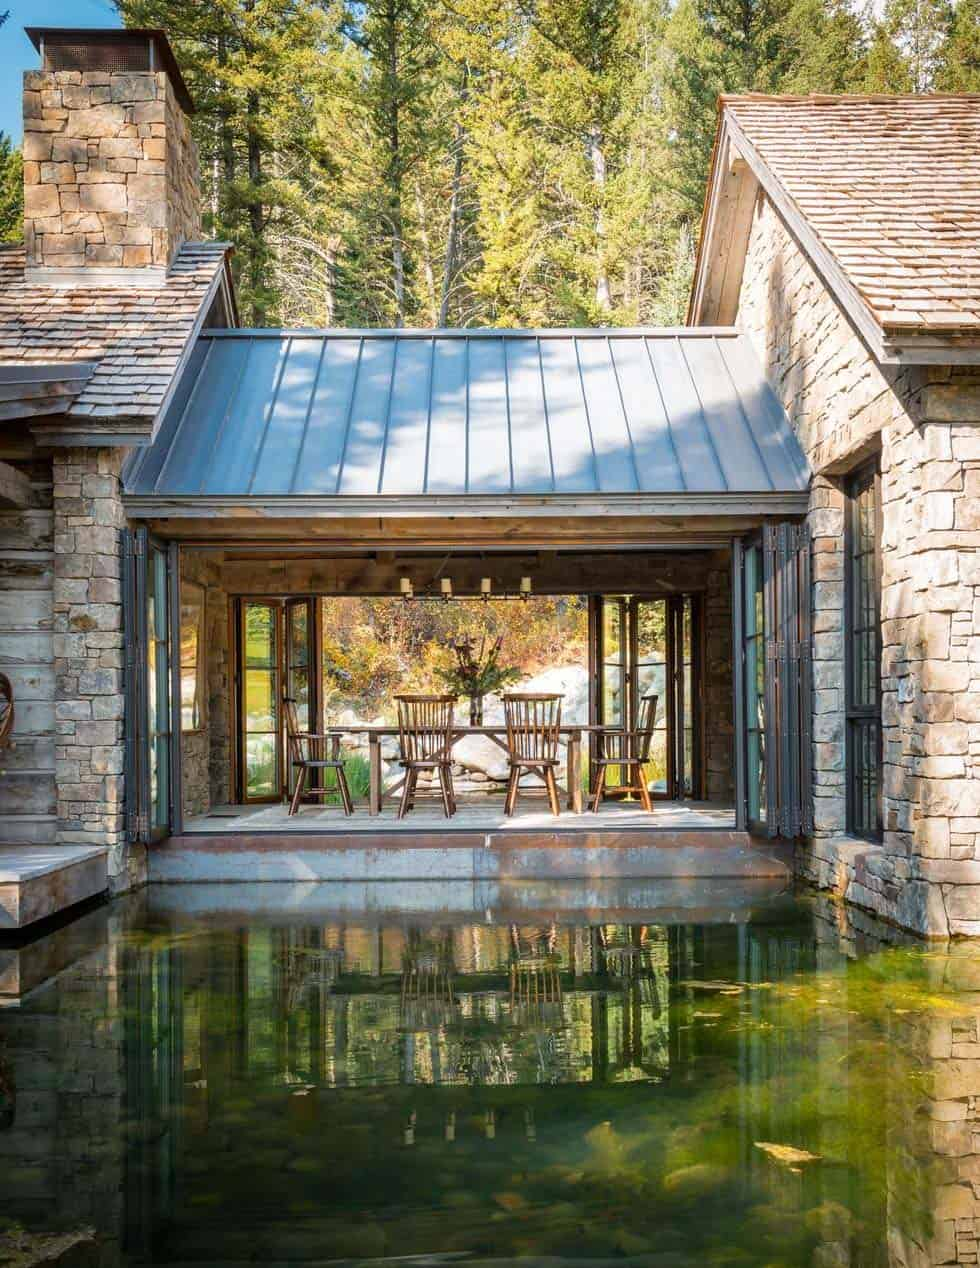 Contemporary Rustic Mountain Retreat-JLF Architects-06-1 Kindesign